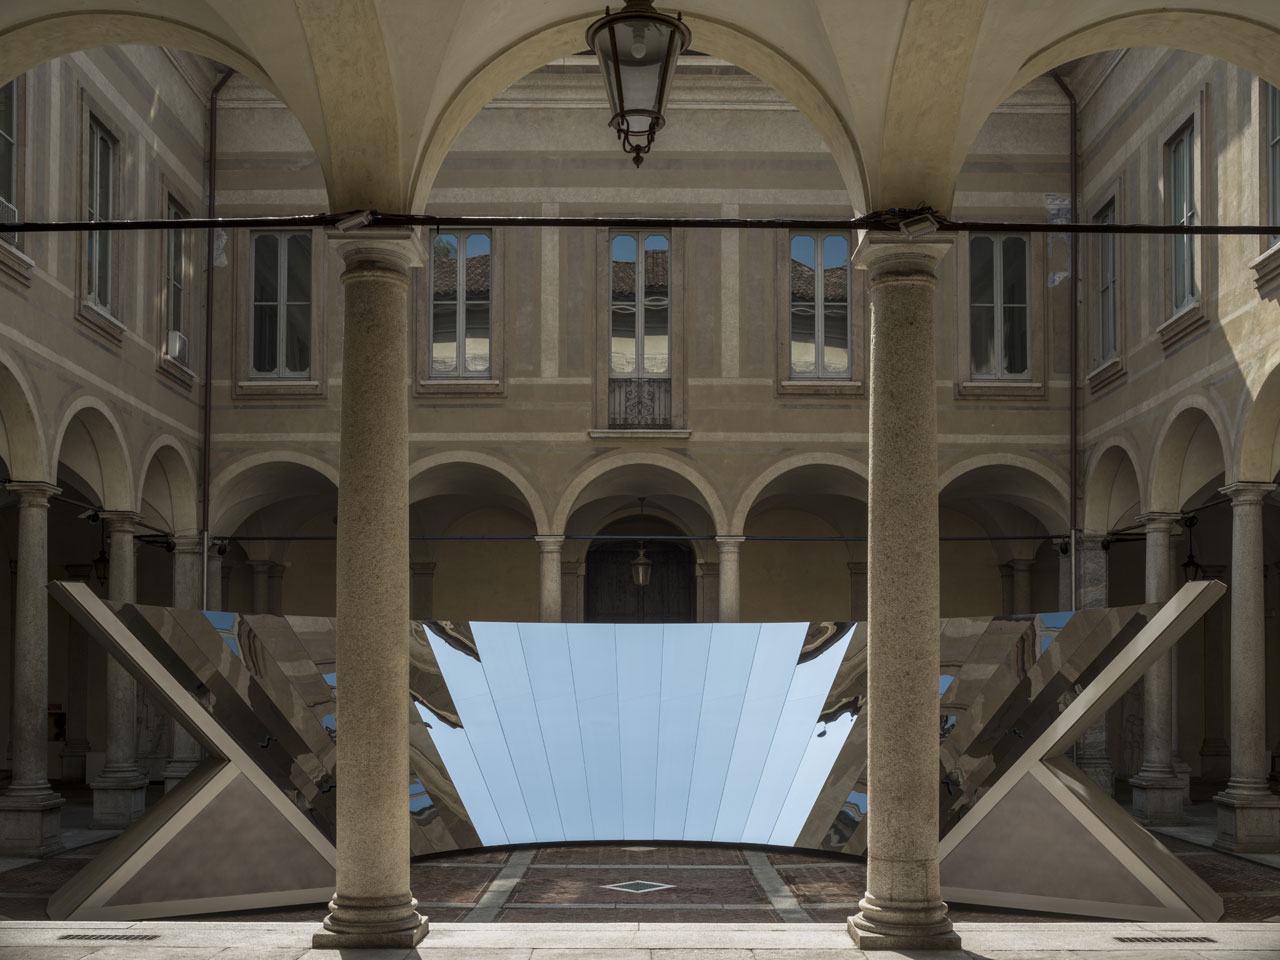 OPEN SKY installation by Phillip K. Smith III for COS at Palazzo Isimbardi.Photo by Lance Gerber.